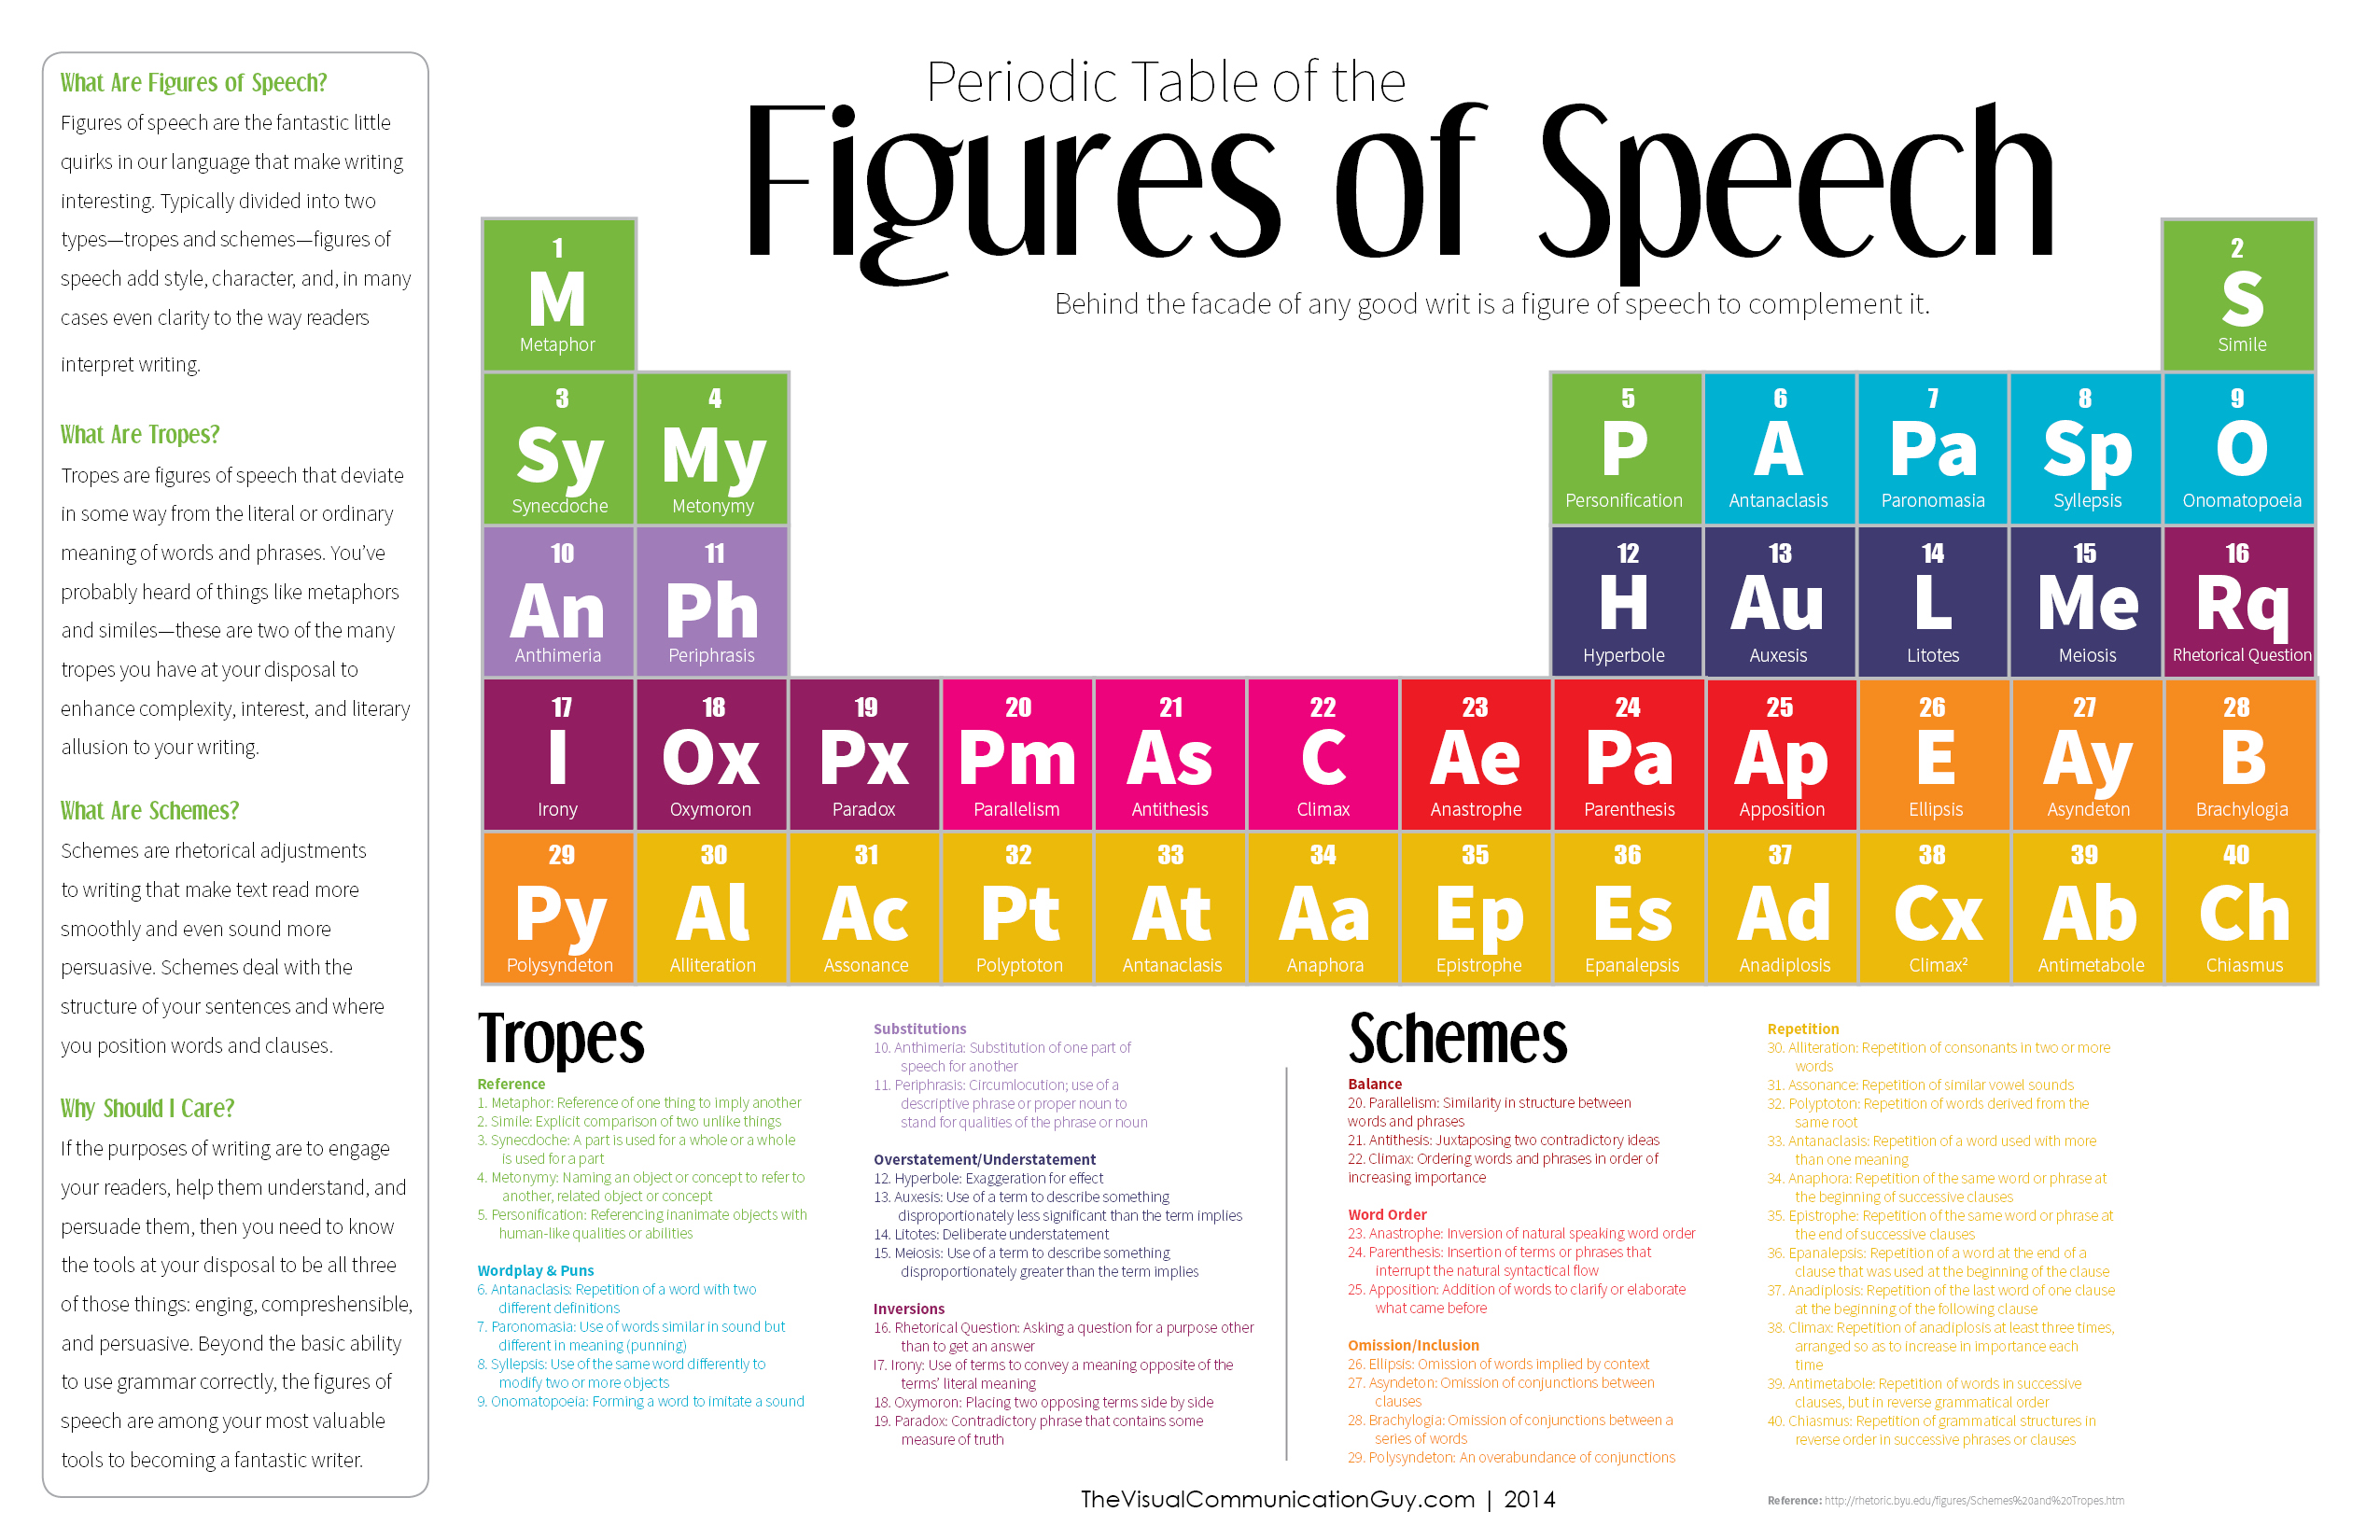 The periodic table of the figures of speech 40 ways to improve periodic table of the figures of speech gamestrikefo Images